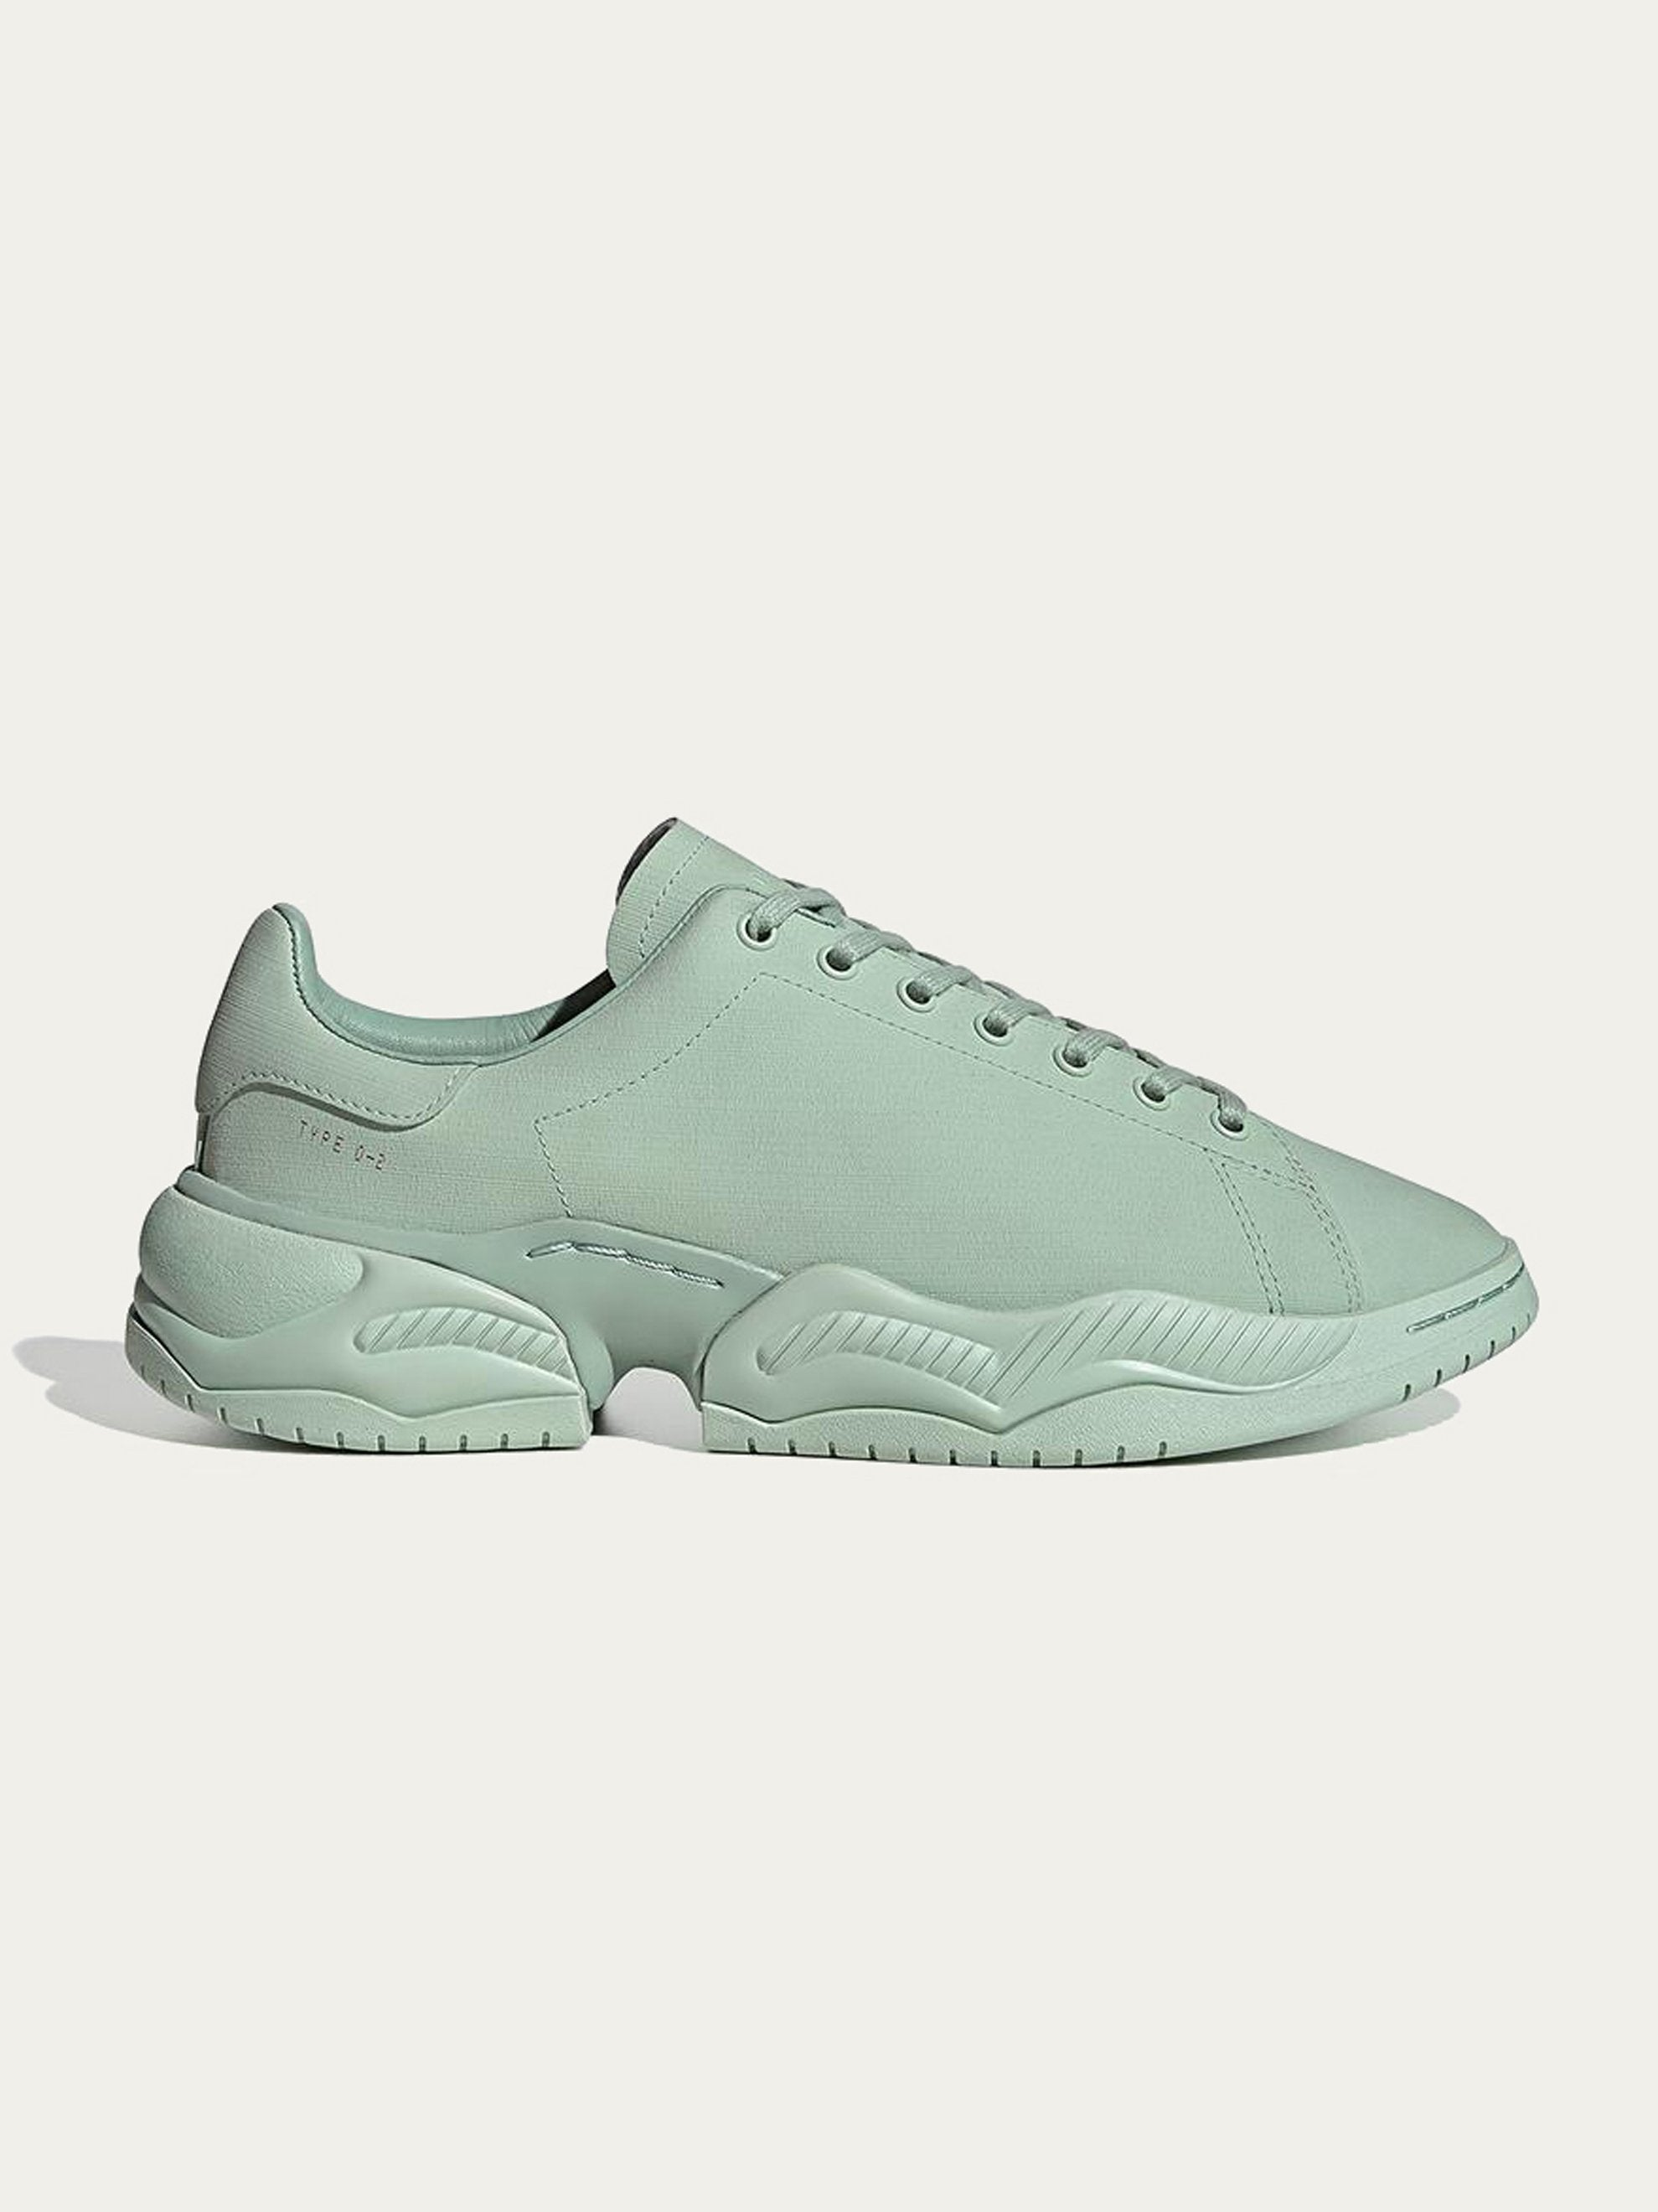 Medical Green OAMC X Adidas TYPE O-2R 1